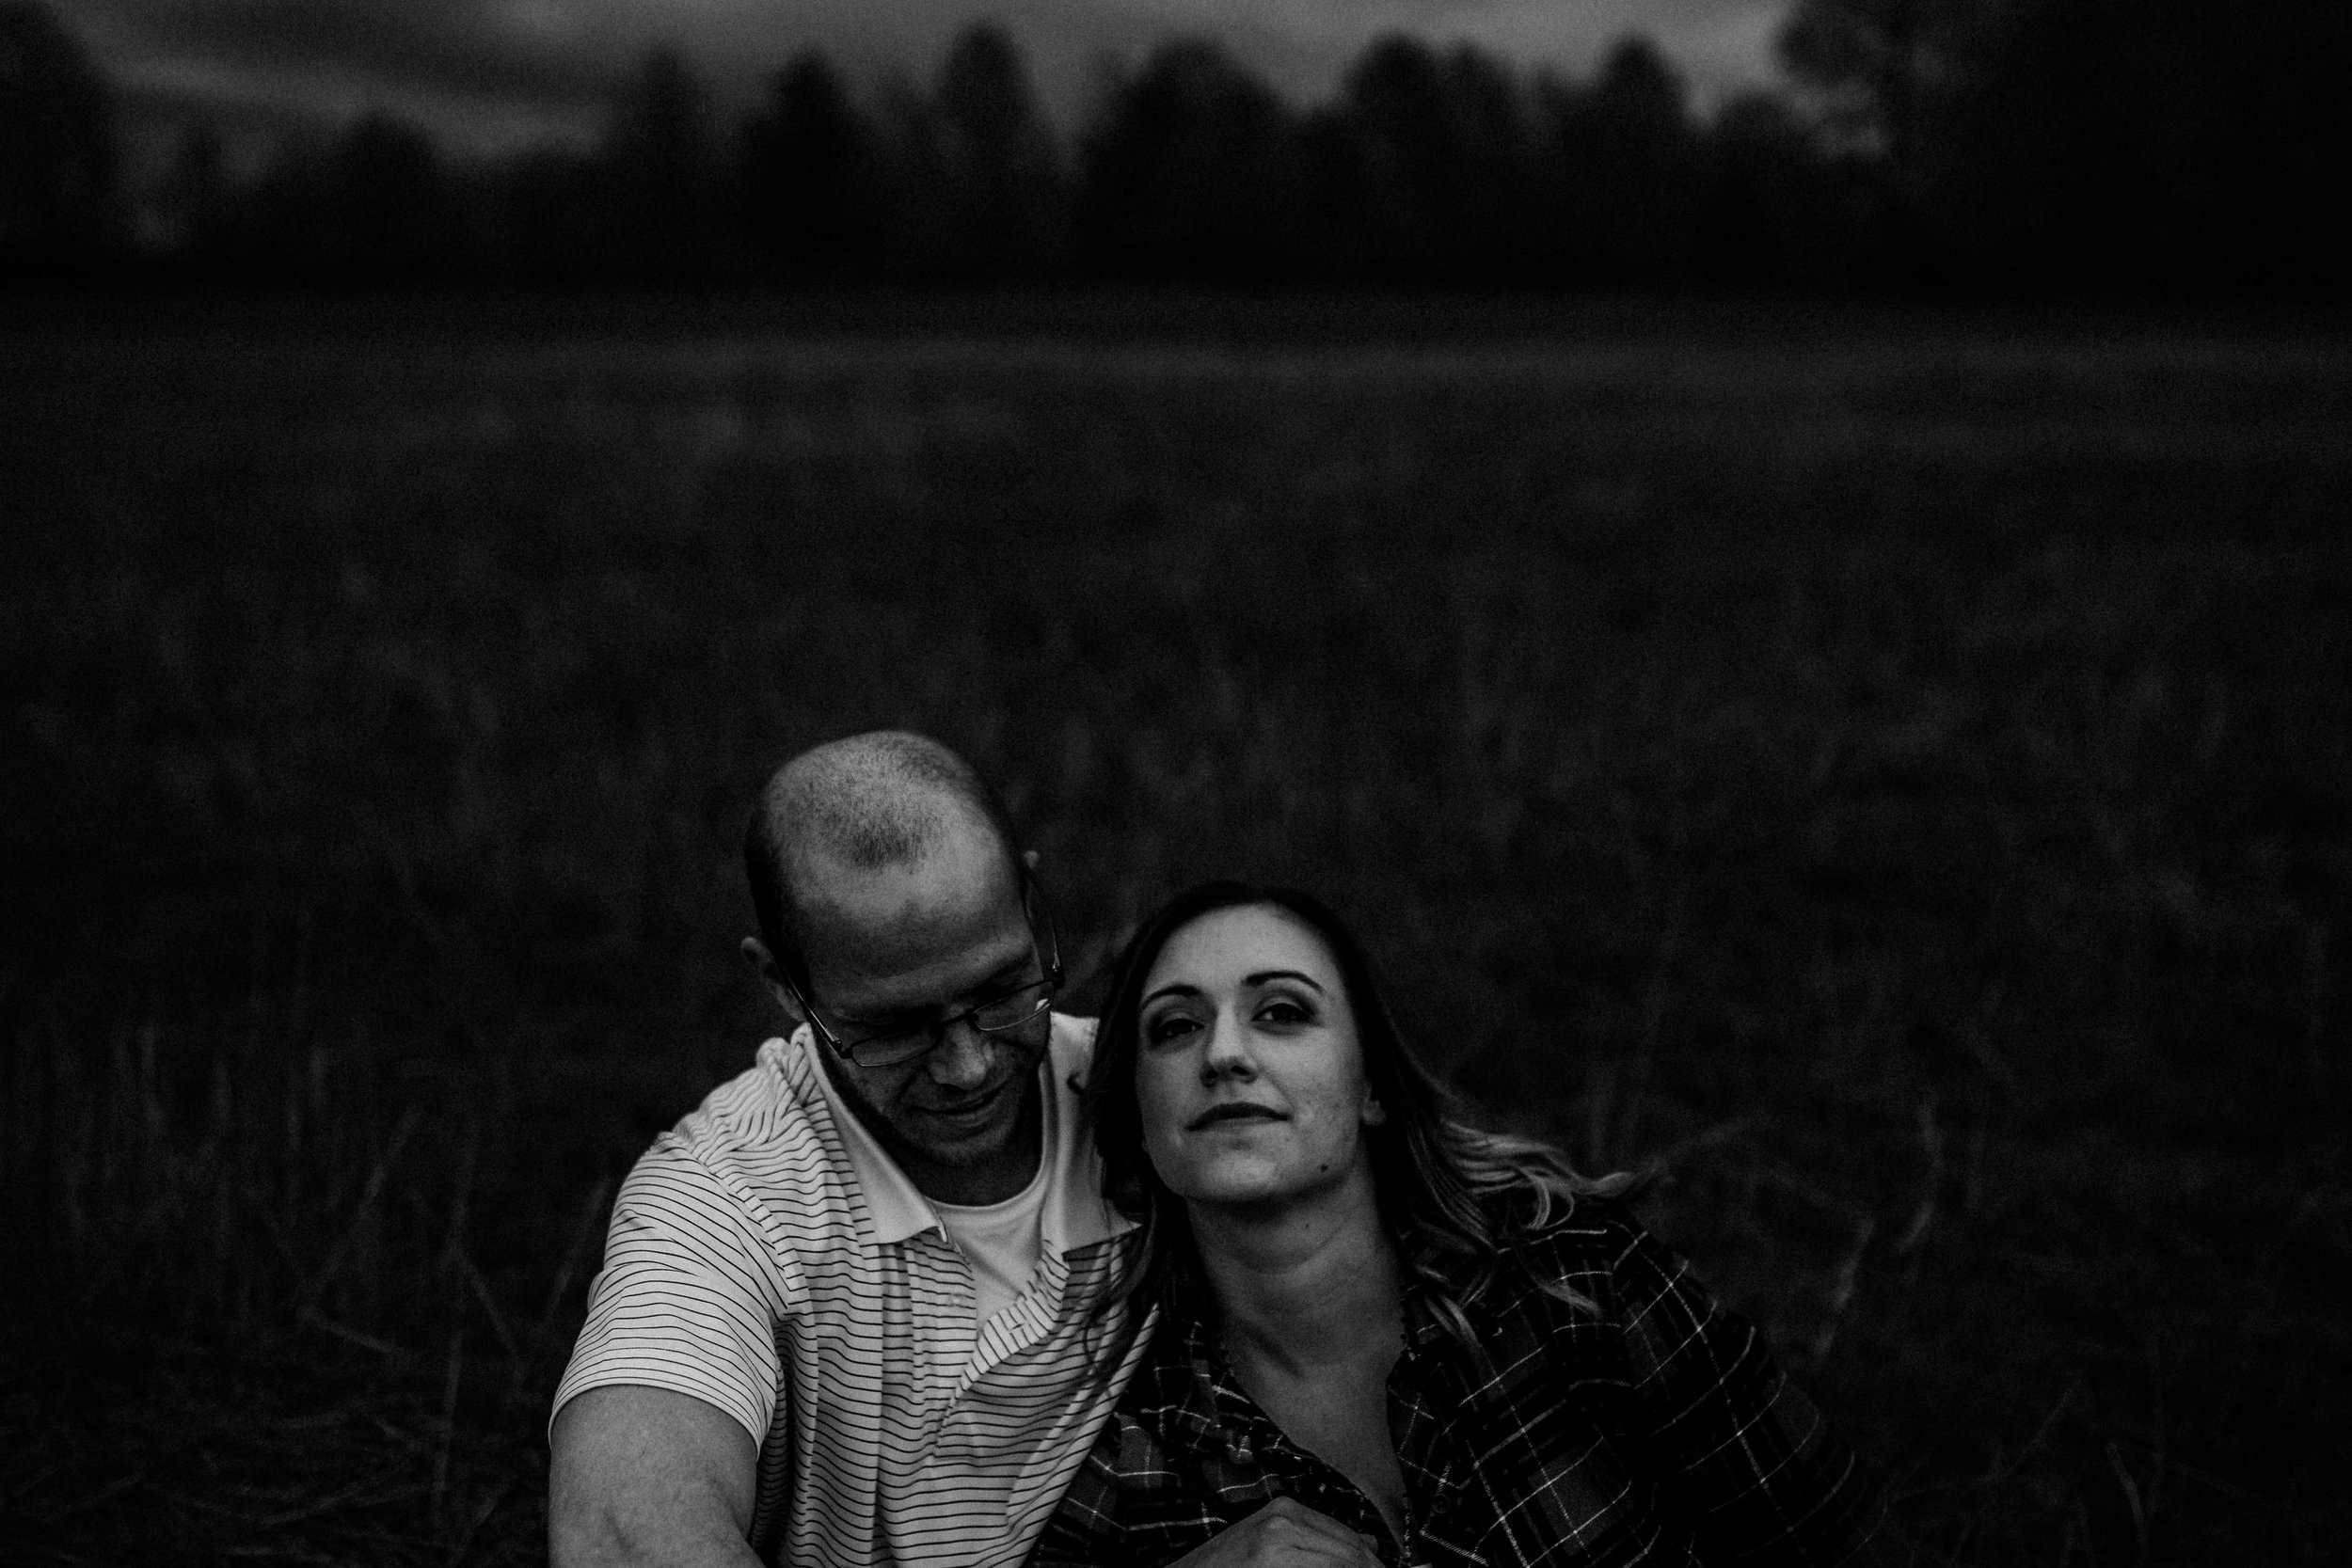 Kristin & Travis Lee's Summit, Mo Engagement | Hannahill Photography | Kansas City, MO | Engagement session | Kansas City wedding photographer | Raleigh wedding photographer | Raleigh photographer | durham engagement photographer | North Carolina wedding photographer | north Carolina | Greensboro | chapel hill photographer | midwest photographer | east coast photographer | wedding photography | engaged | she said yes | love story | lifestyle photographer | artistic and emotive photography | black and whites | dramatic art photography | woodland session | adventure session | greens cloudy days spring session